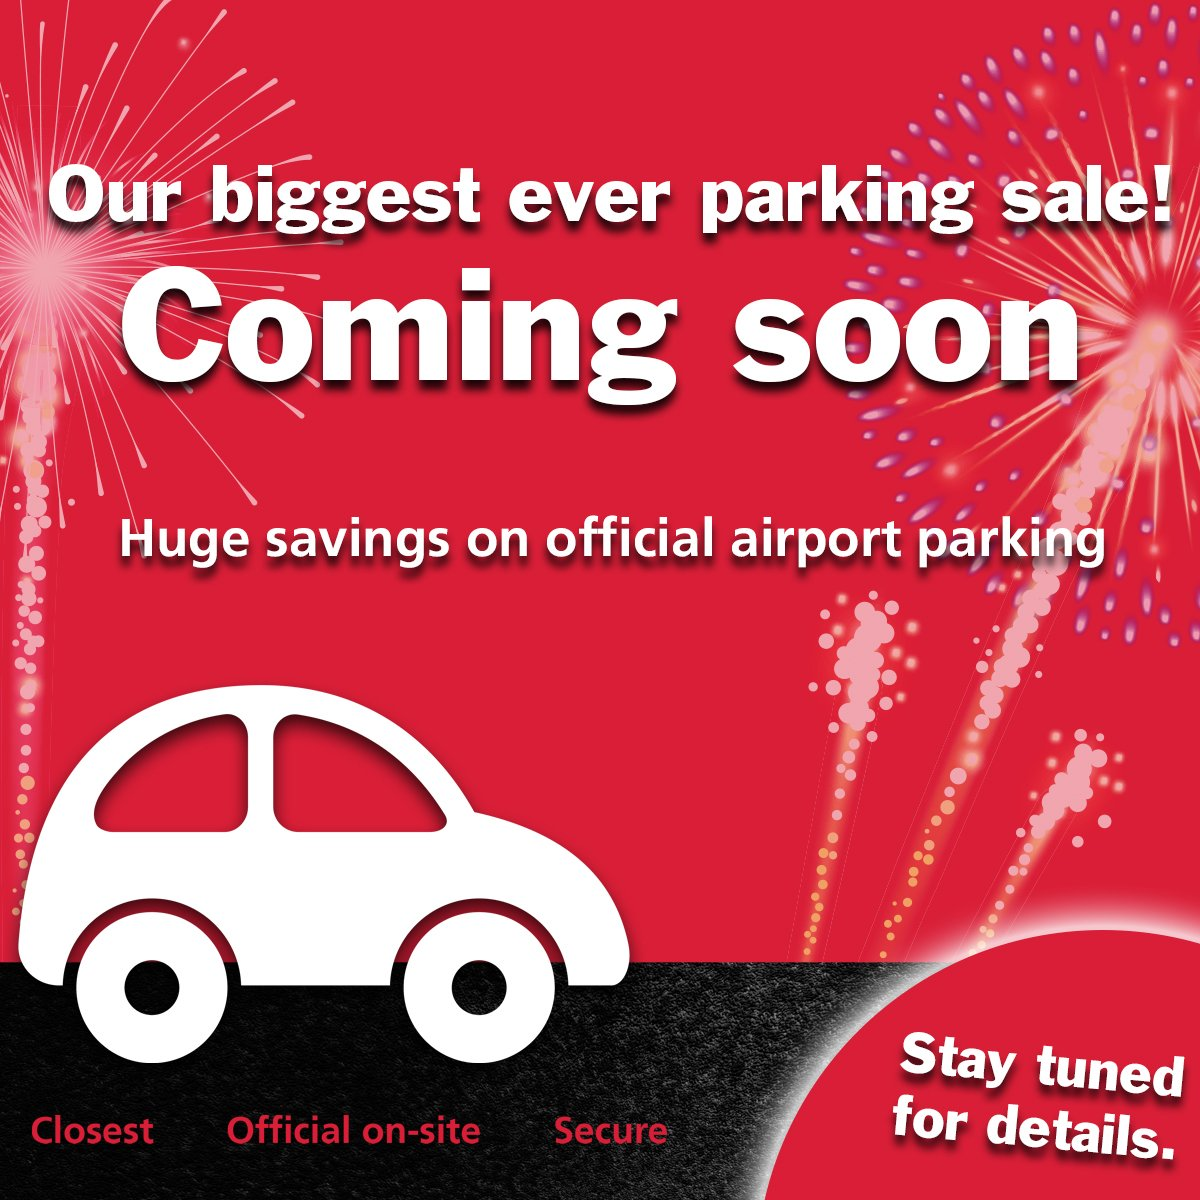 Coming soon... Our biggest ever parking sale! Stay tuned for more details. Book now: